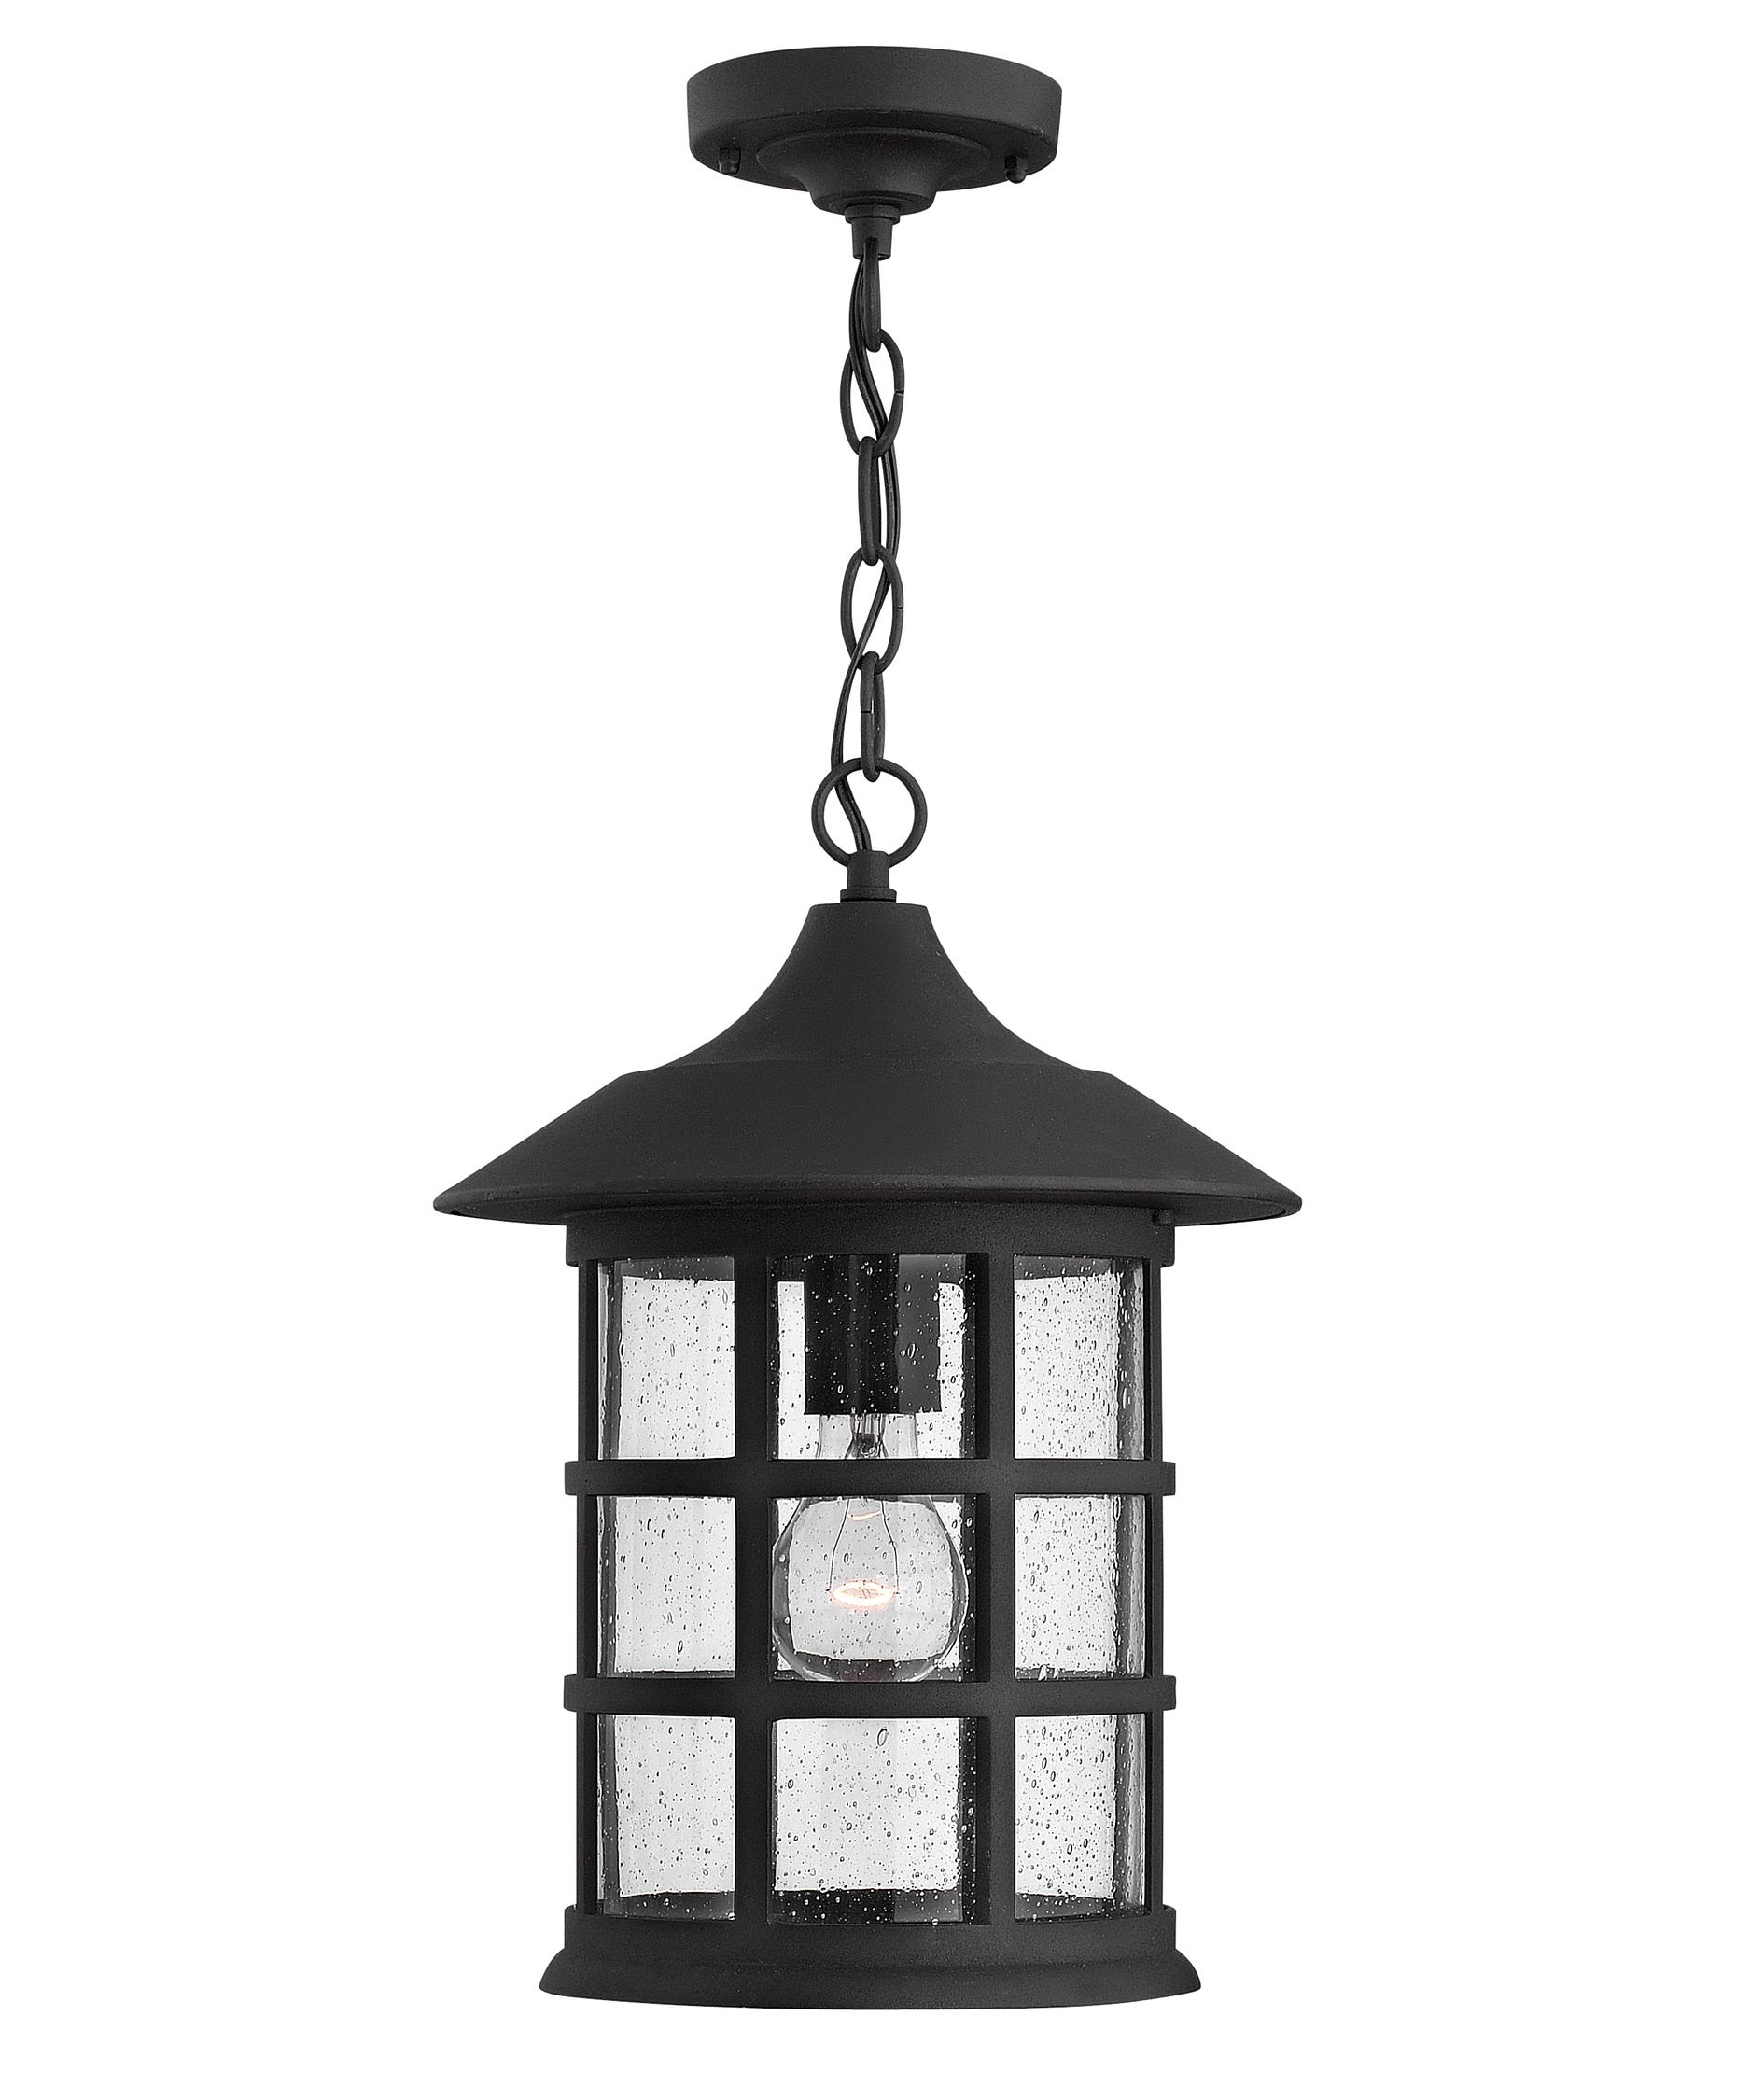 Best And Newest Hinkley Lighting 1802 Freeport 10 Inch Wide 1 Light Outdoor Hanging Regarding White Outdoor Hanging Lights (View 3 of 20)